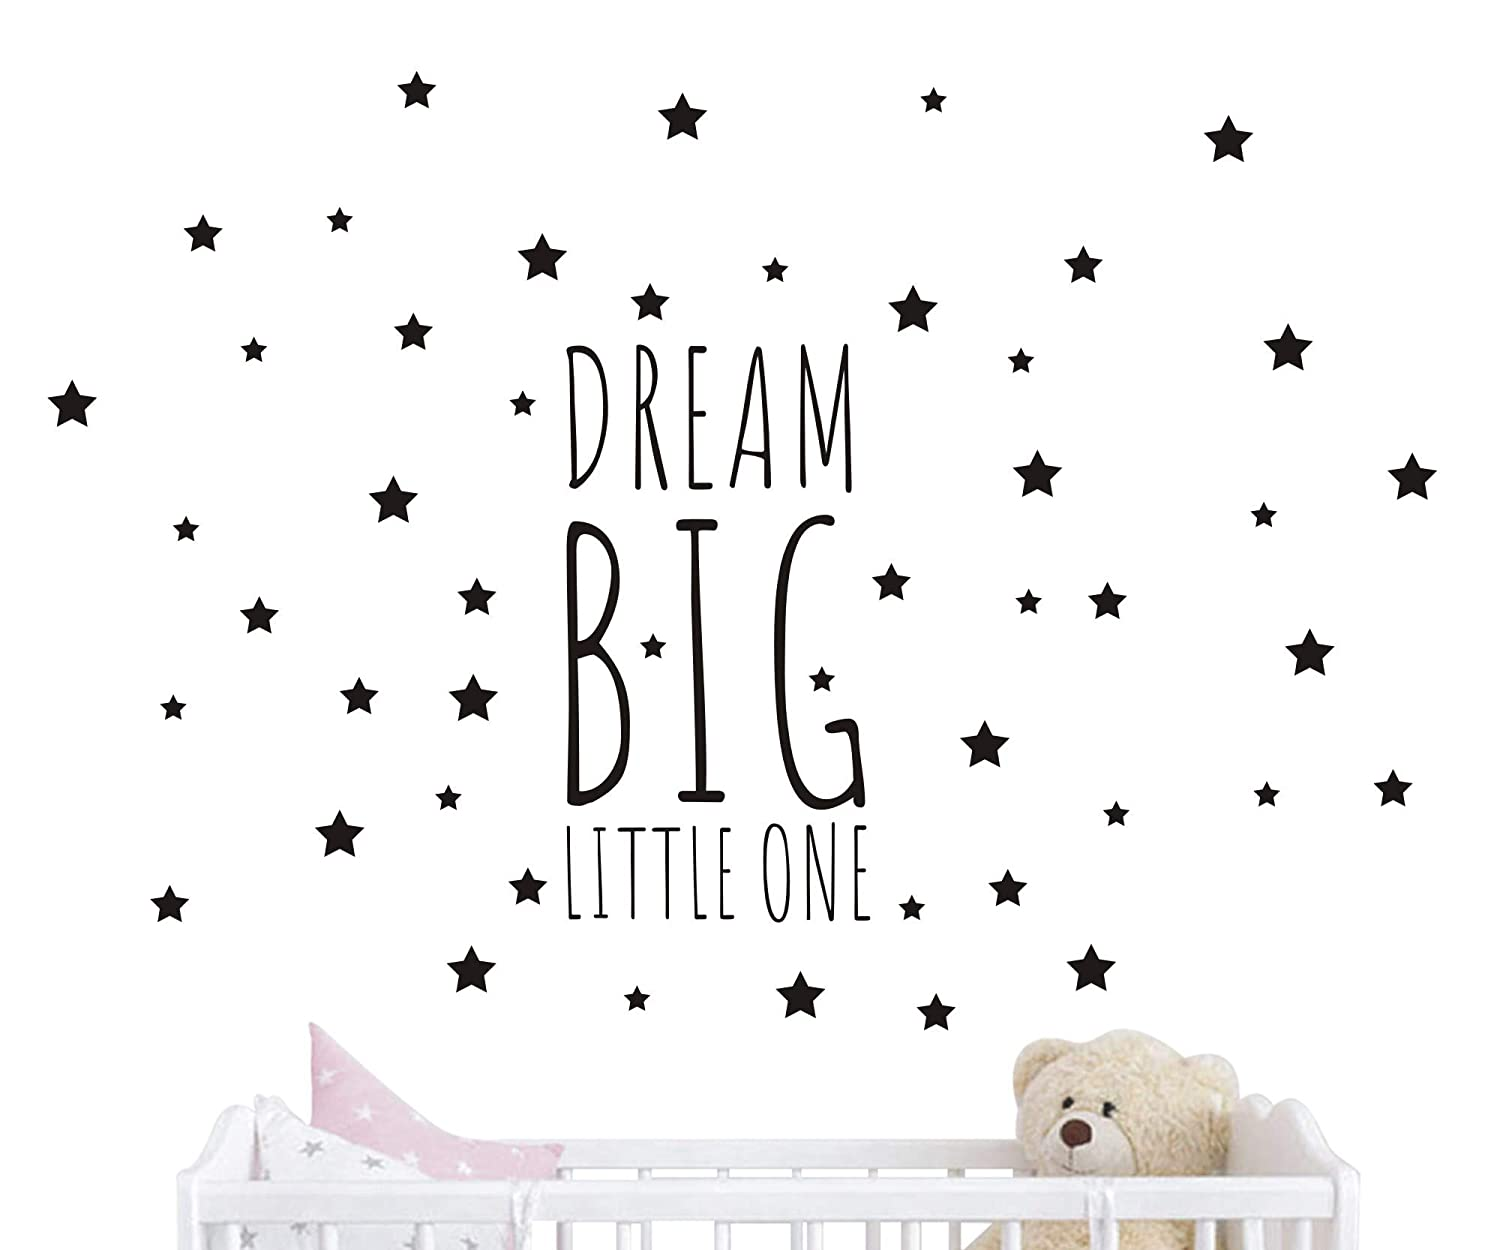 JOYRESIDE Dream Big Little One Night Sleep Wall Decal Vinyl Sticker Stars Decor Nursery Kids Babys Room Home Bedroom Quote Decoration YMX14 (Black, Small) JURUOXIN